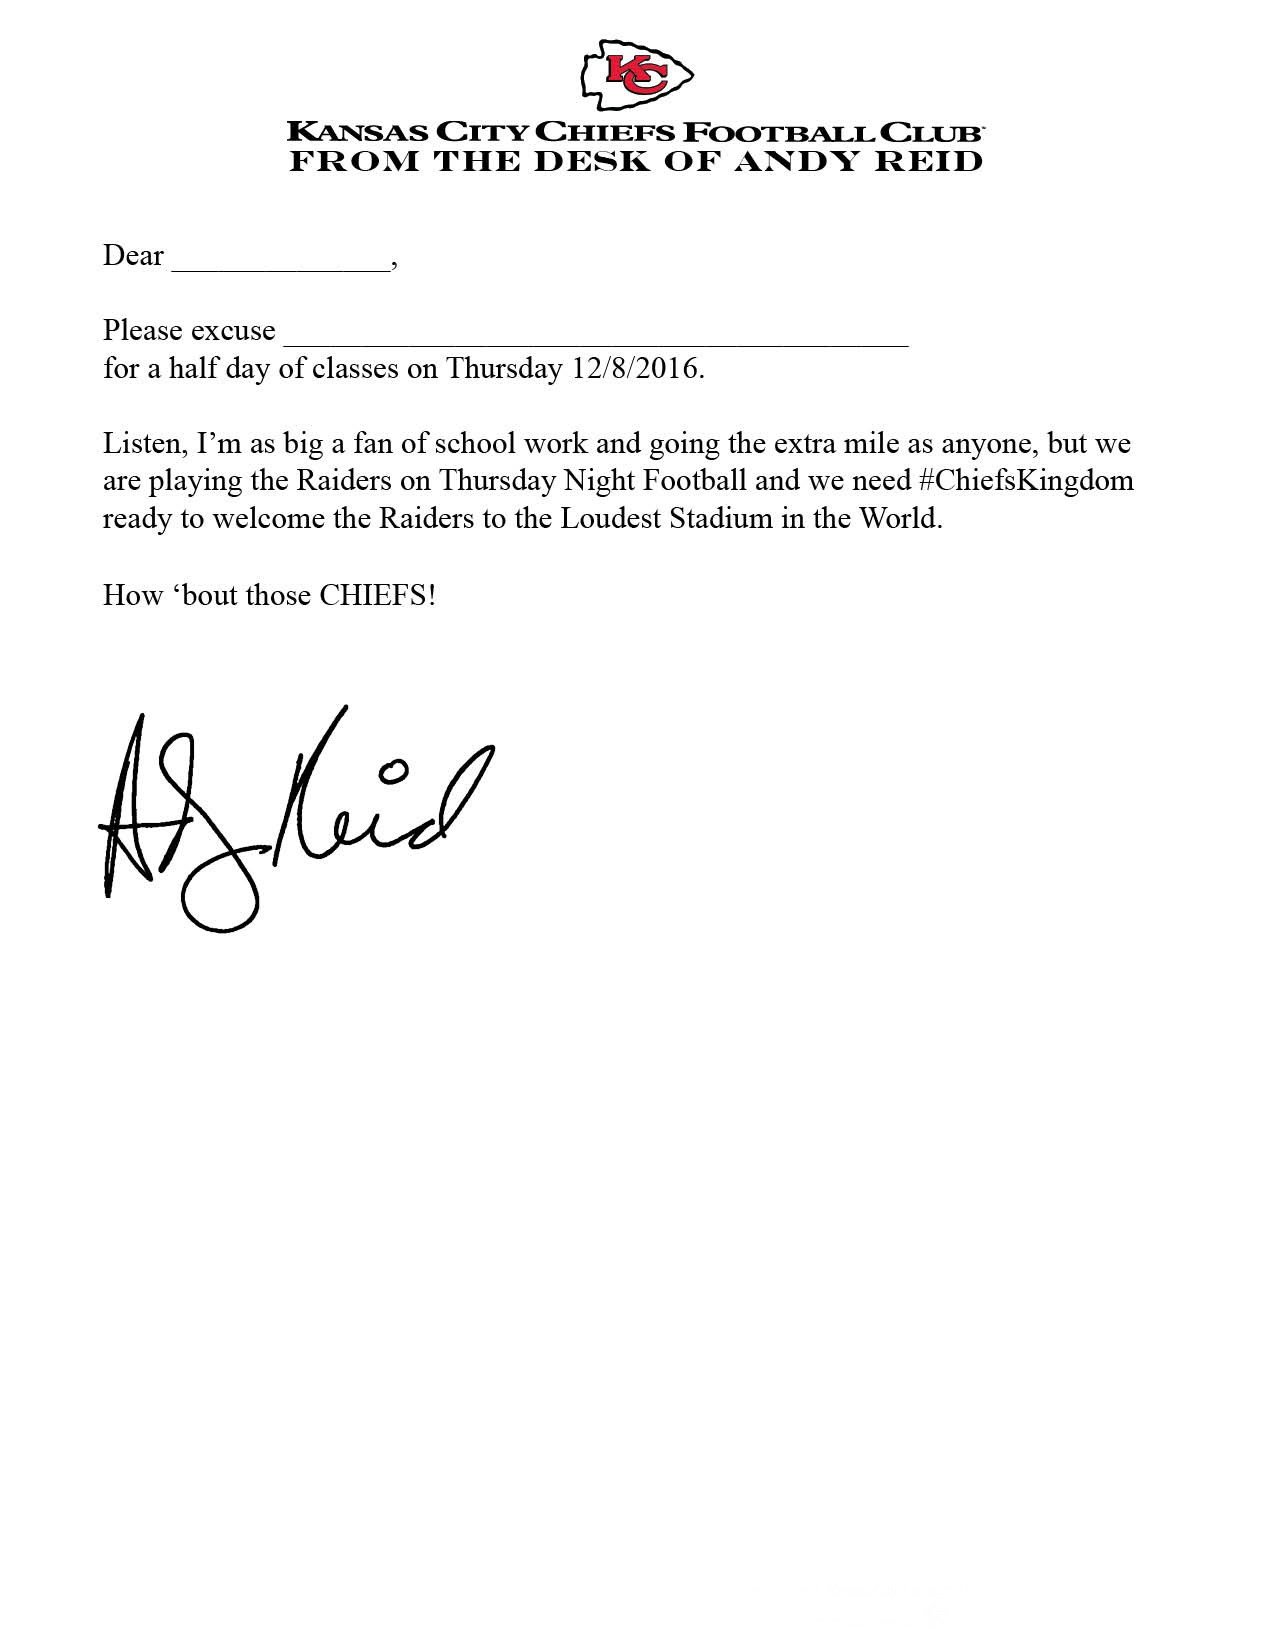 excuse letter for school kake wichita kansas news weather sports andy 1211